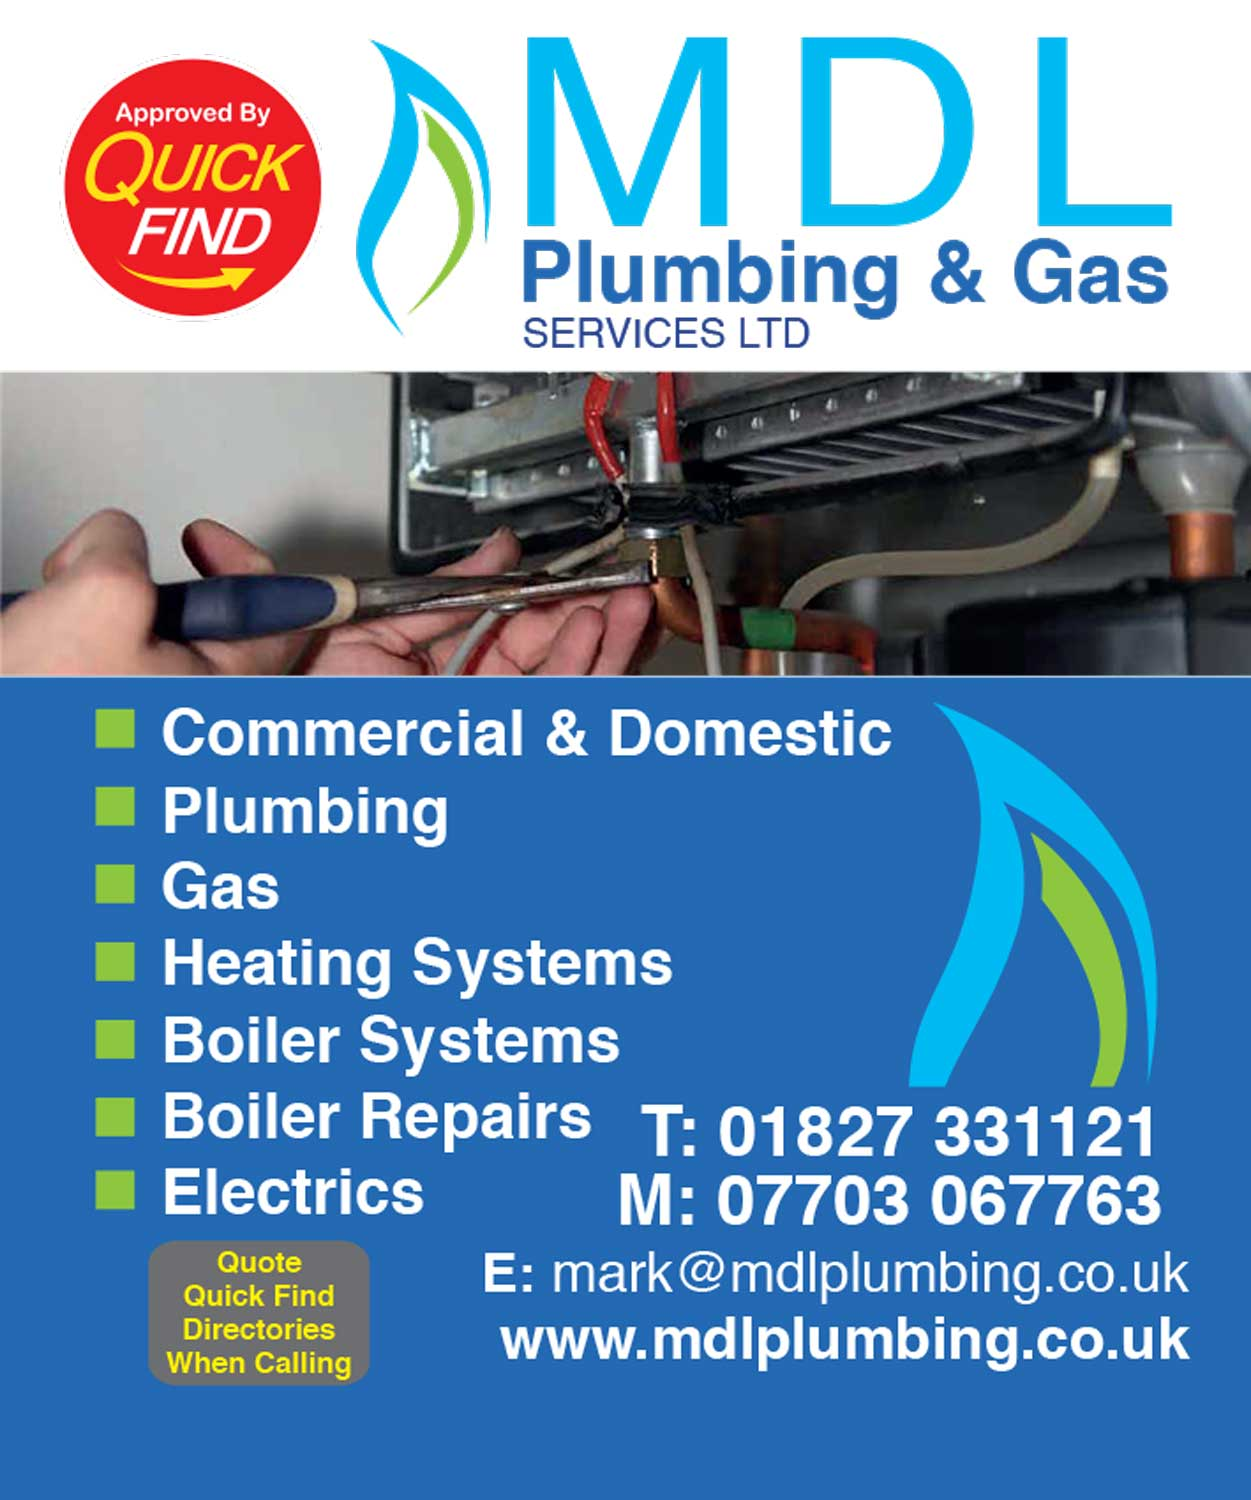 MDL Plumbing & Gas Services Ltd